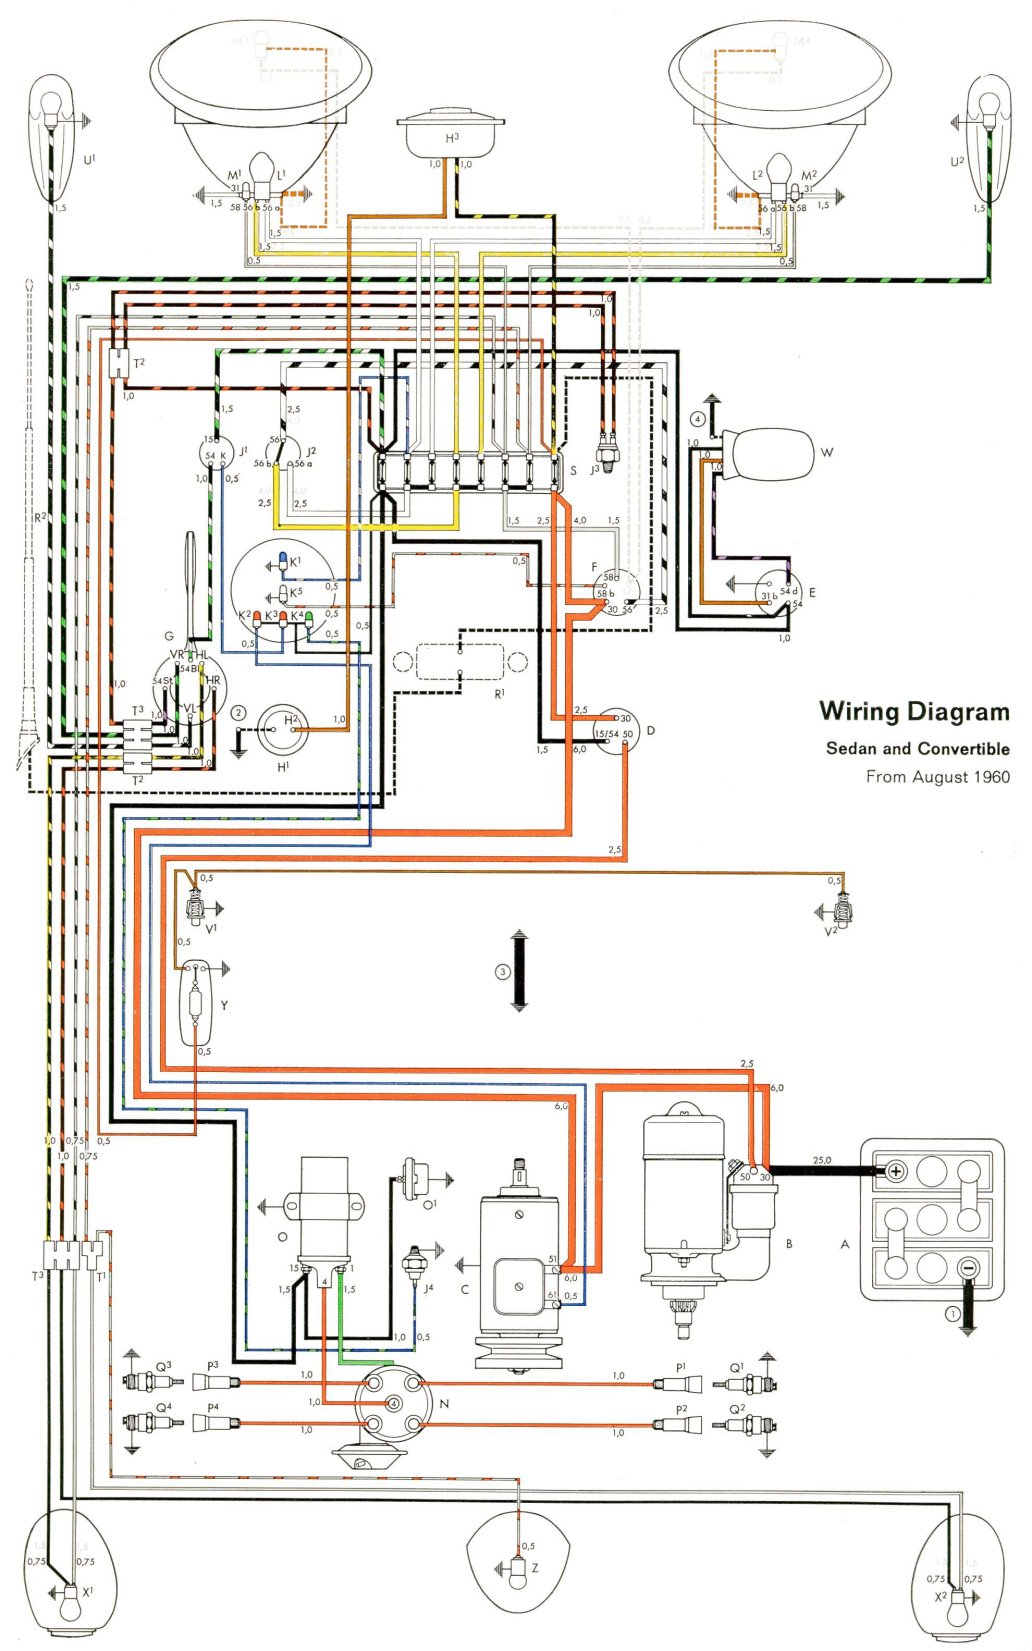 bug_61 1961 beetle wiring diagram thegoldenbug com 1972 beetle wiring diagram at mifinder.co